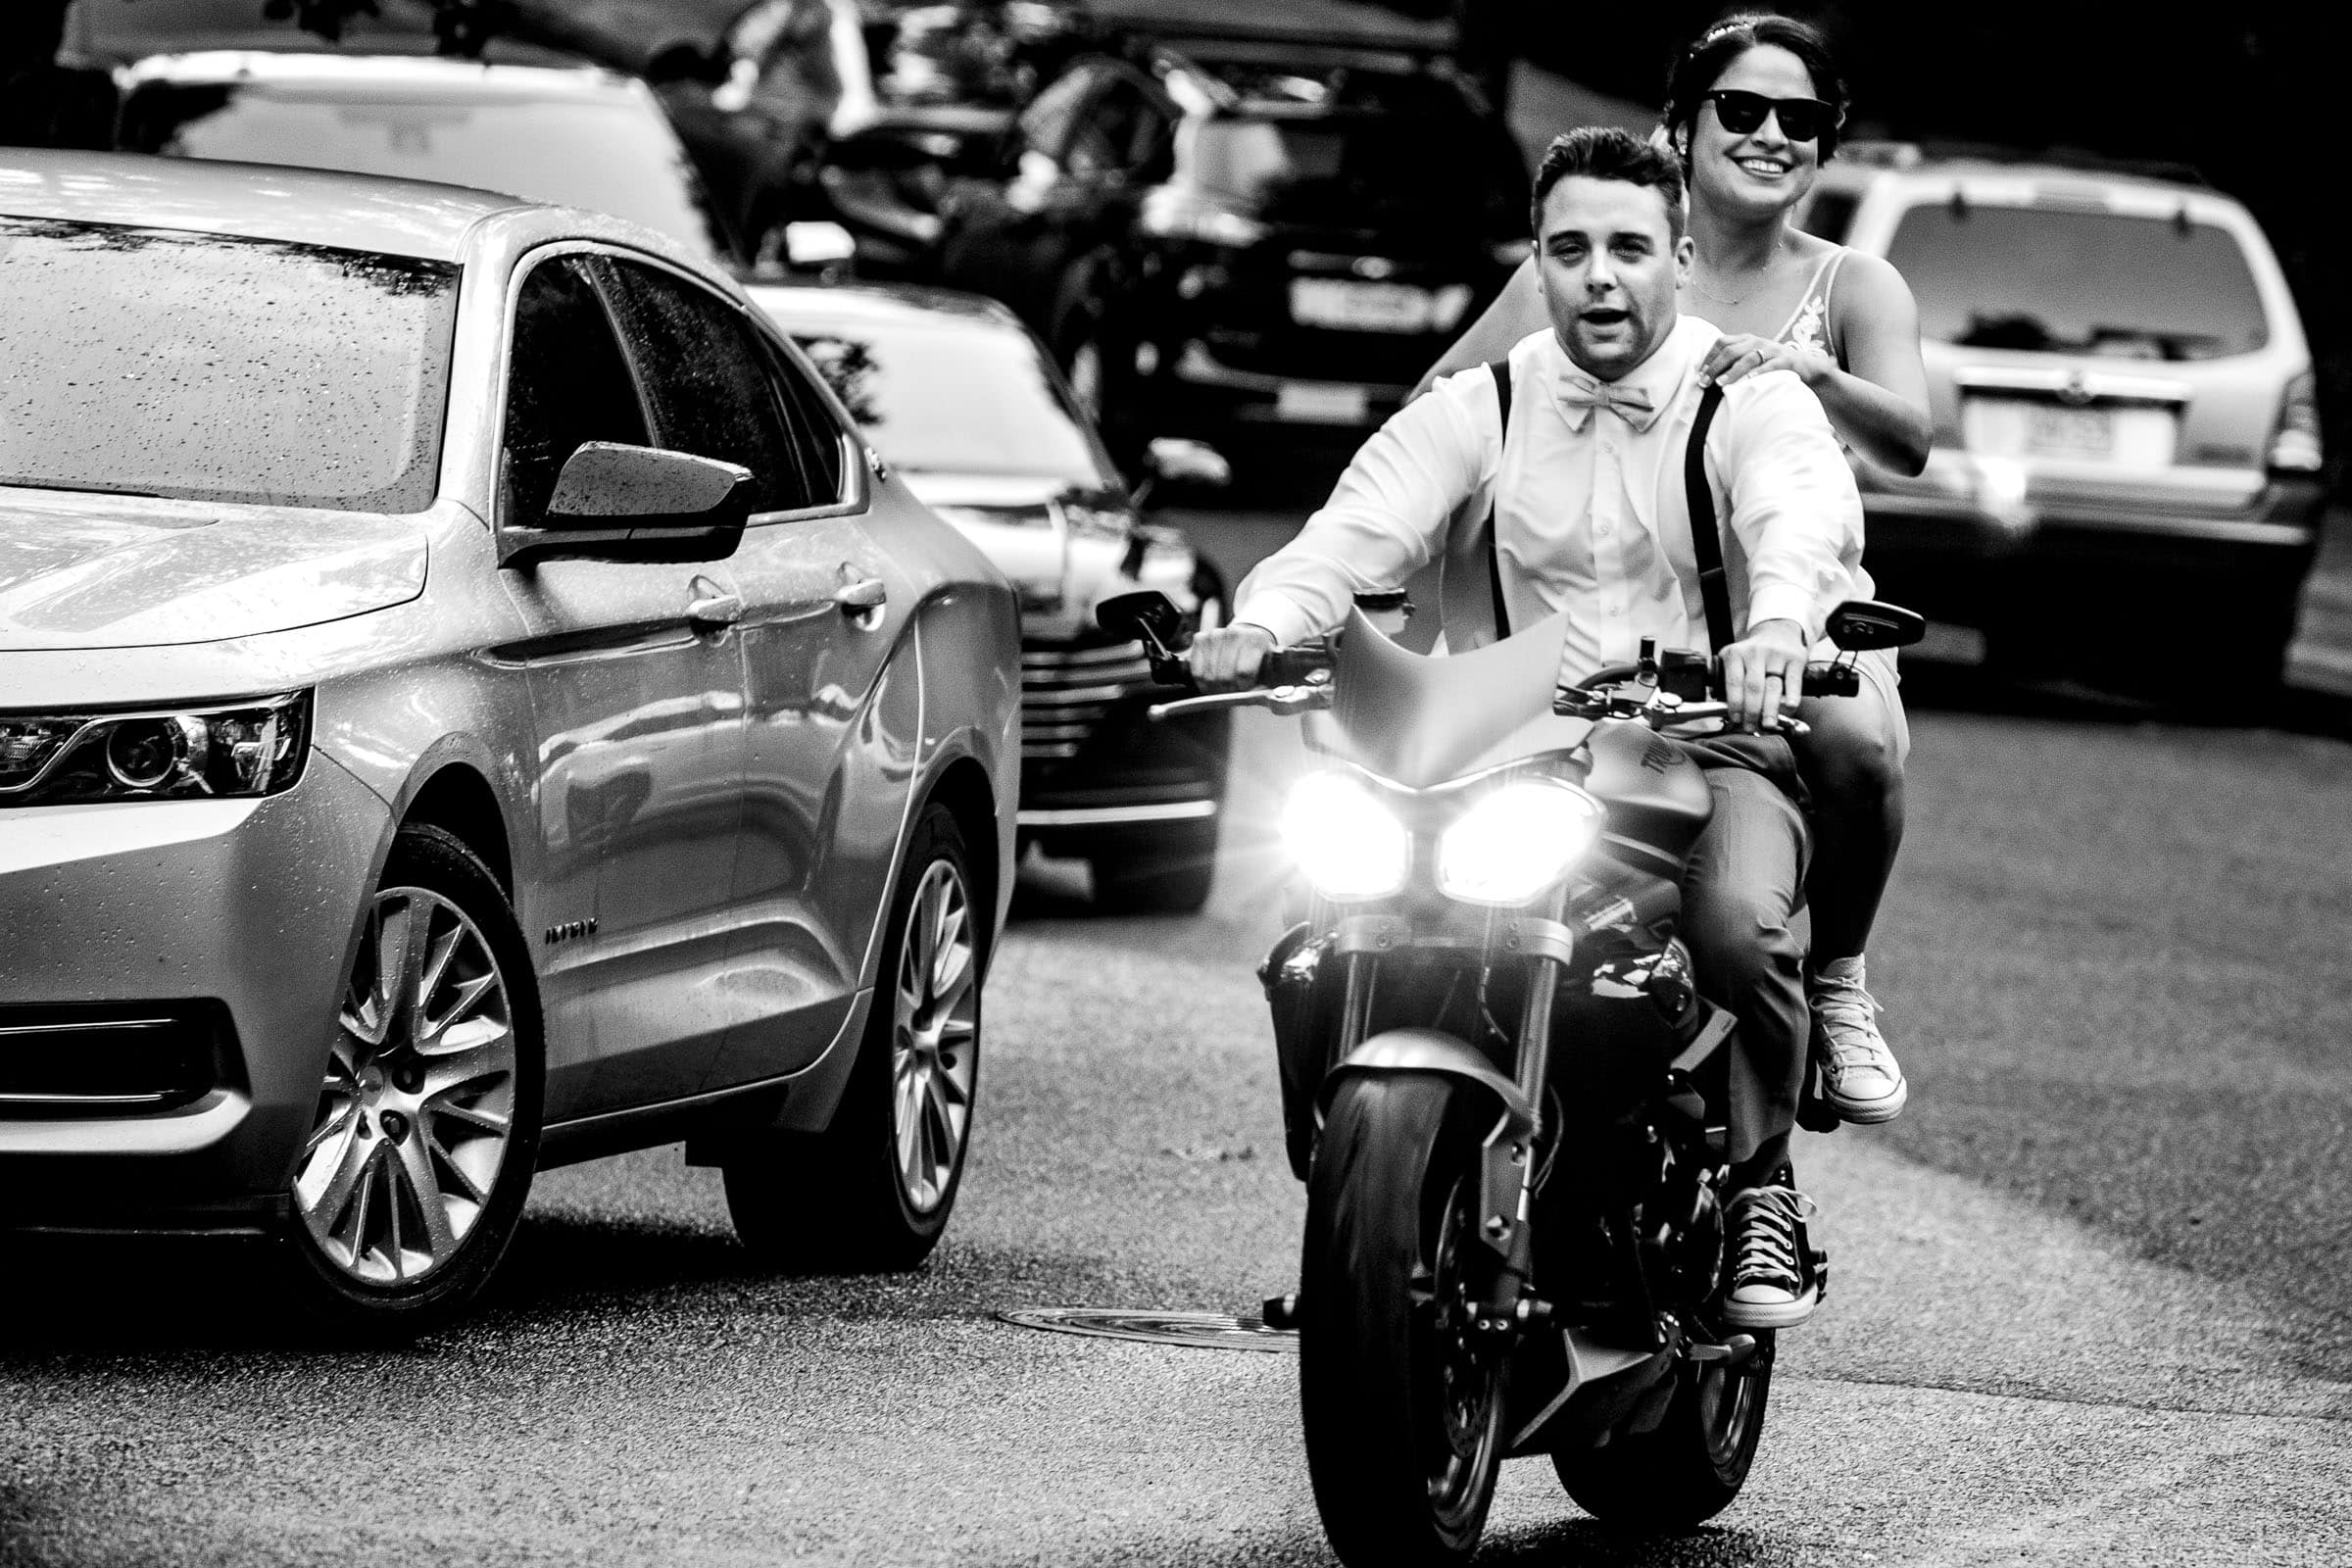 Bride and groom on motorcycle during their Portland Wedding elopement